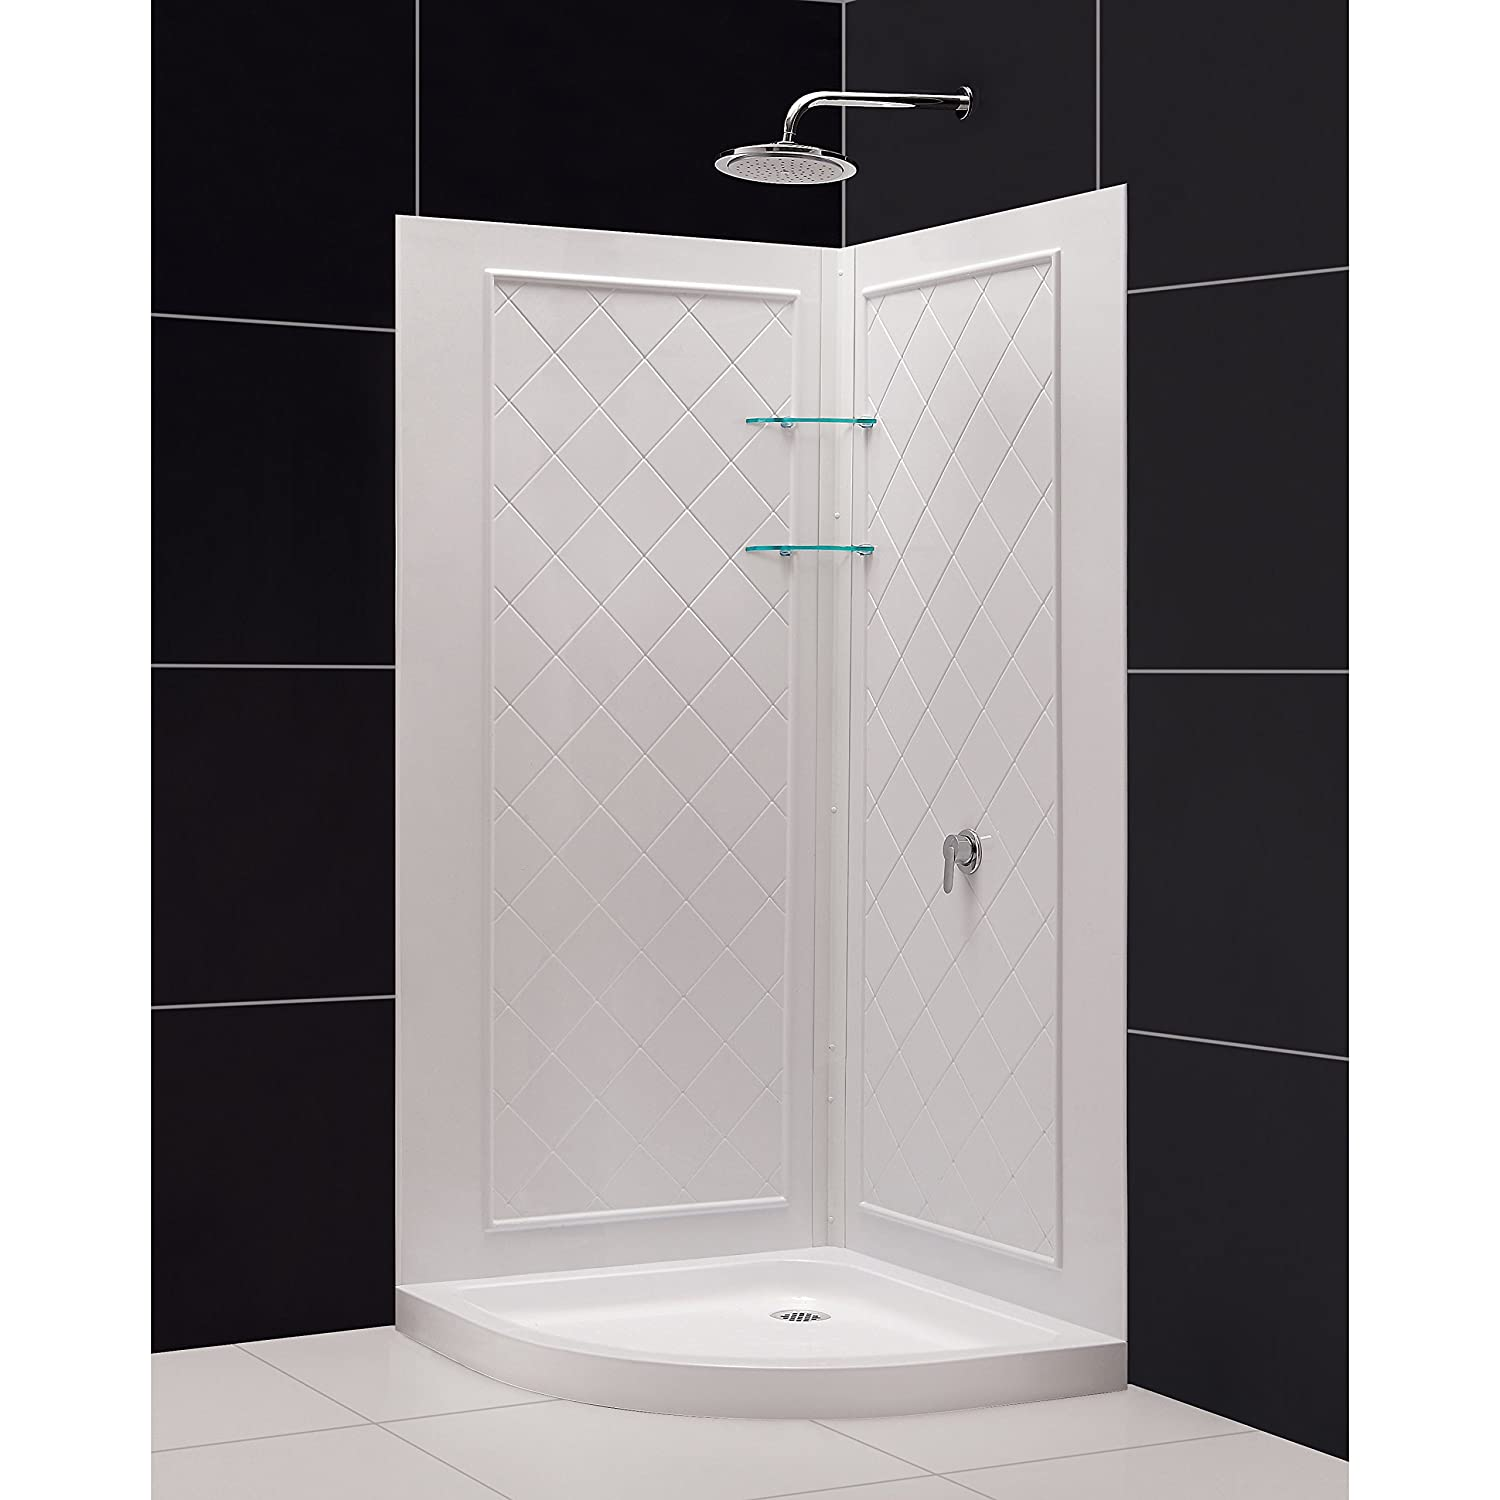 W Kit, With Corner Sliding Shower Enclosure In Chrome, White Acrylic Base  And Backwalls   Shower Doors   Amazon.com